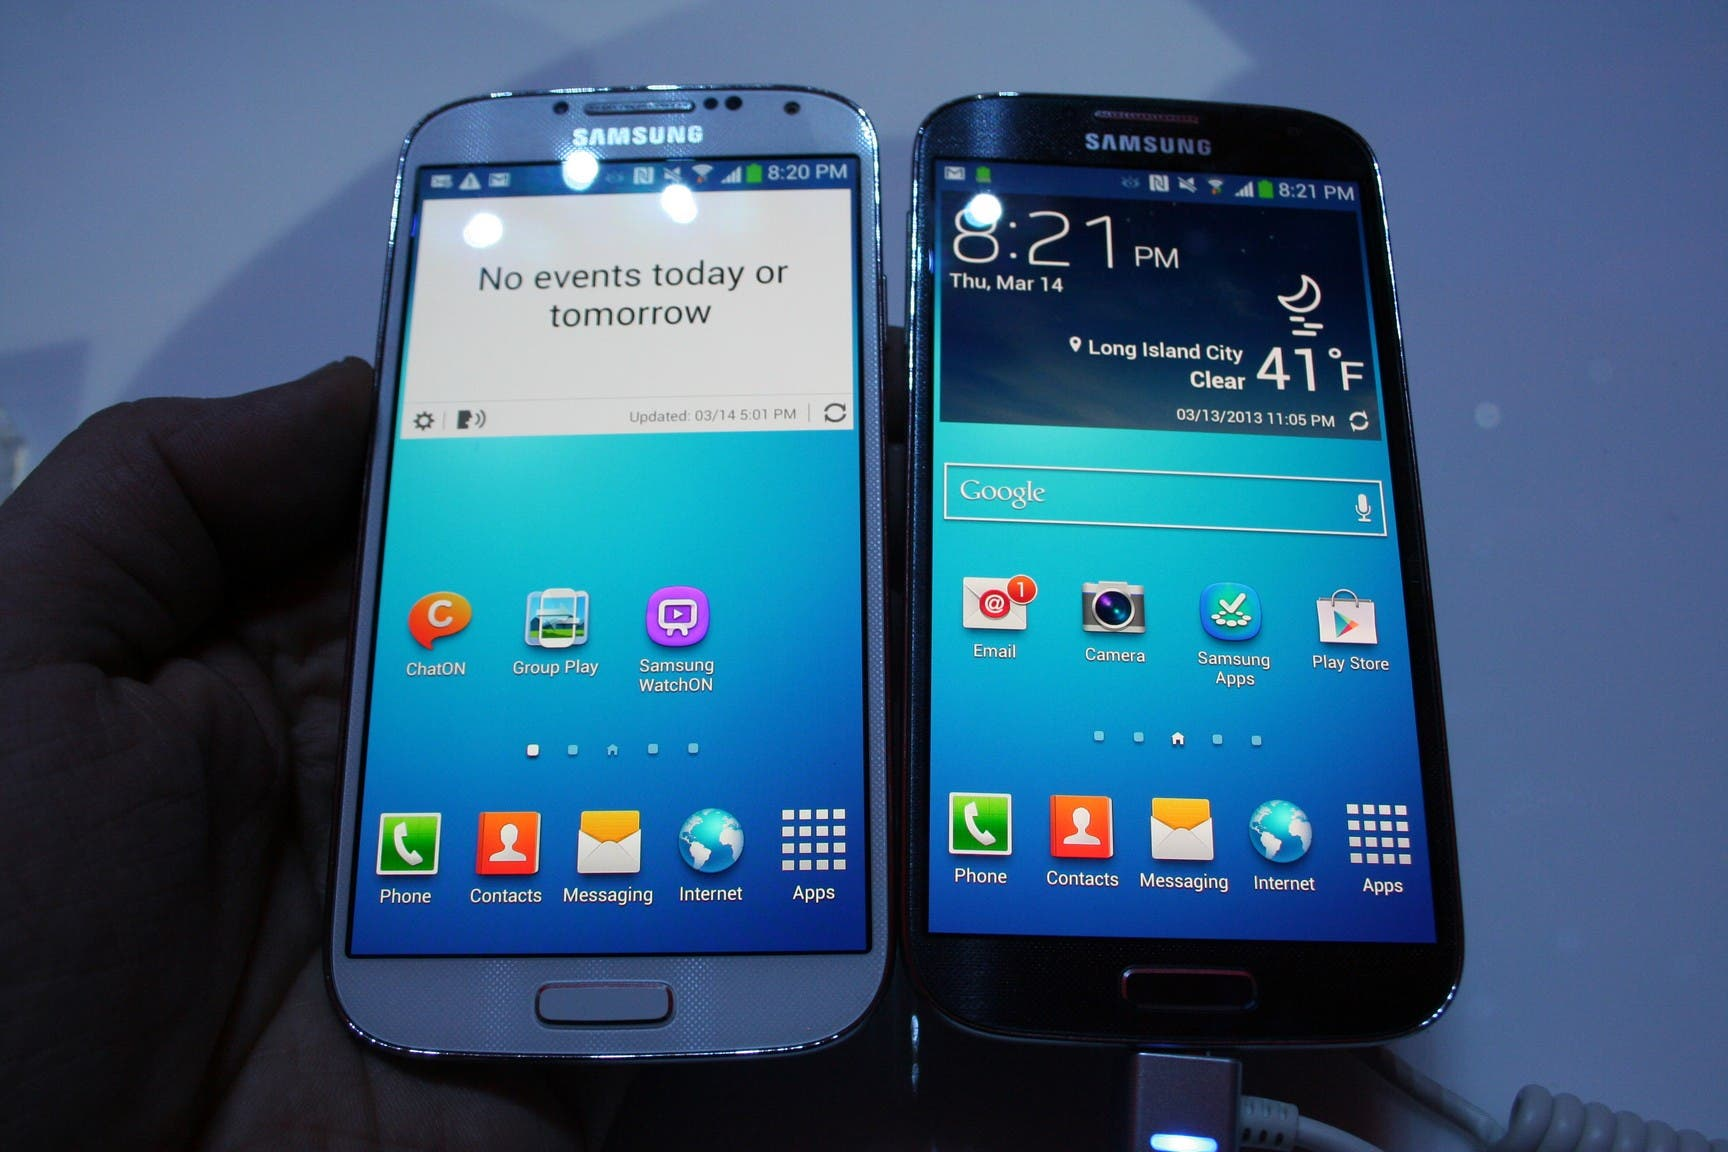 Samsung Galaxy S4 Launch 58 Samsung Galaxy S4: White Frost und Black Mist im Video Vergleich